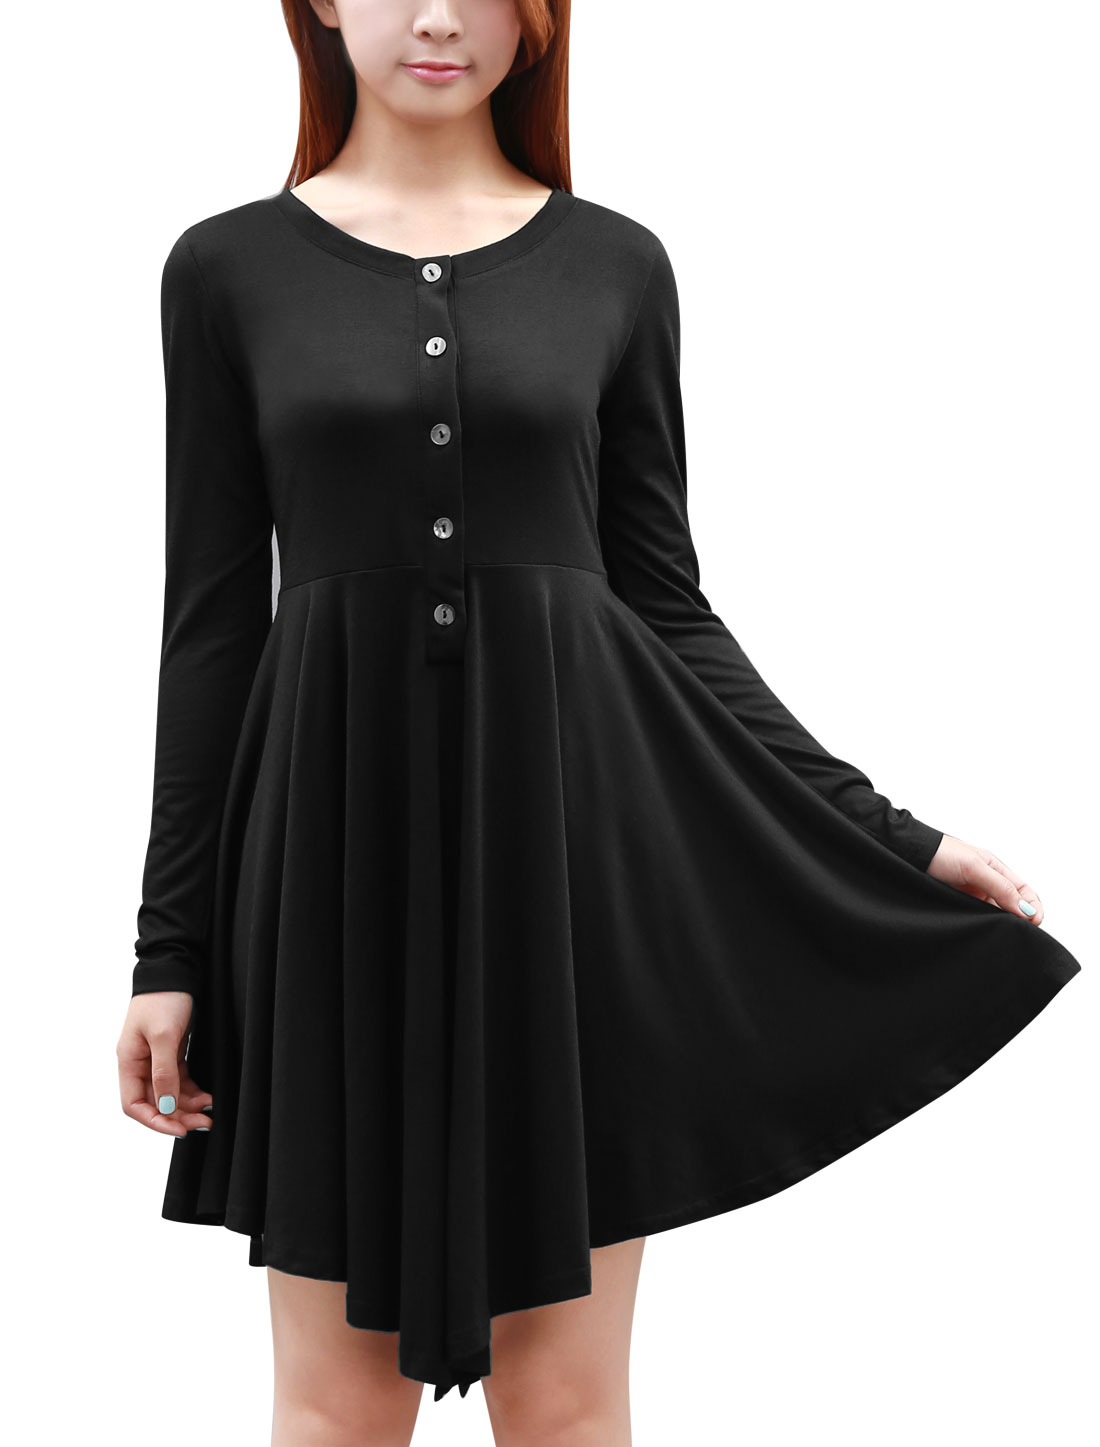 Women Round Neck Long-Sleeved Button Front Leisure Dress Black XS